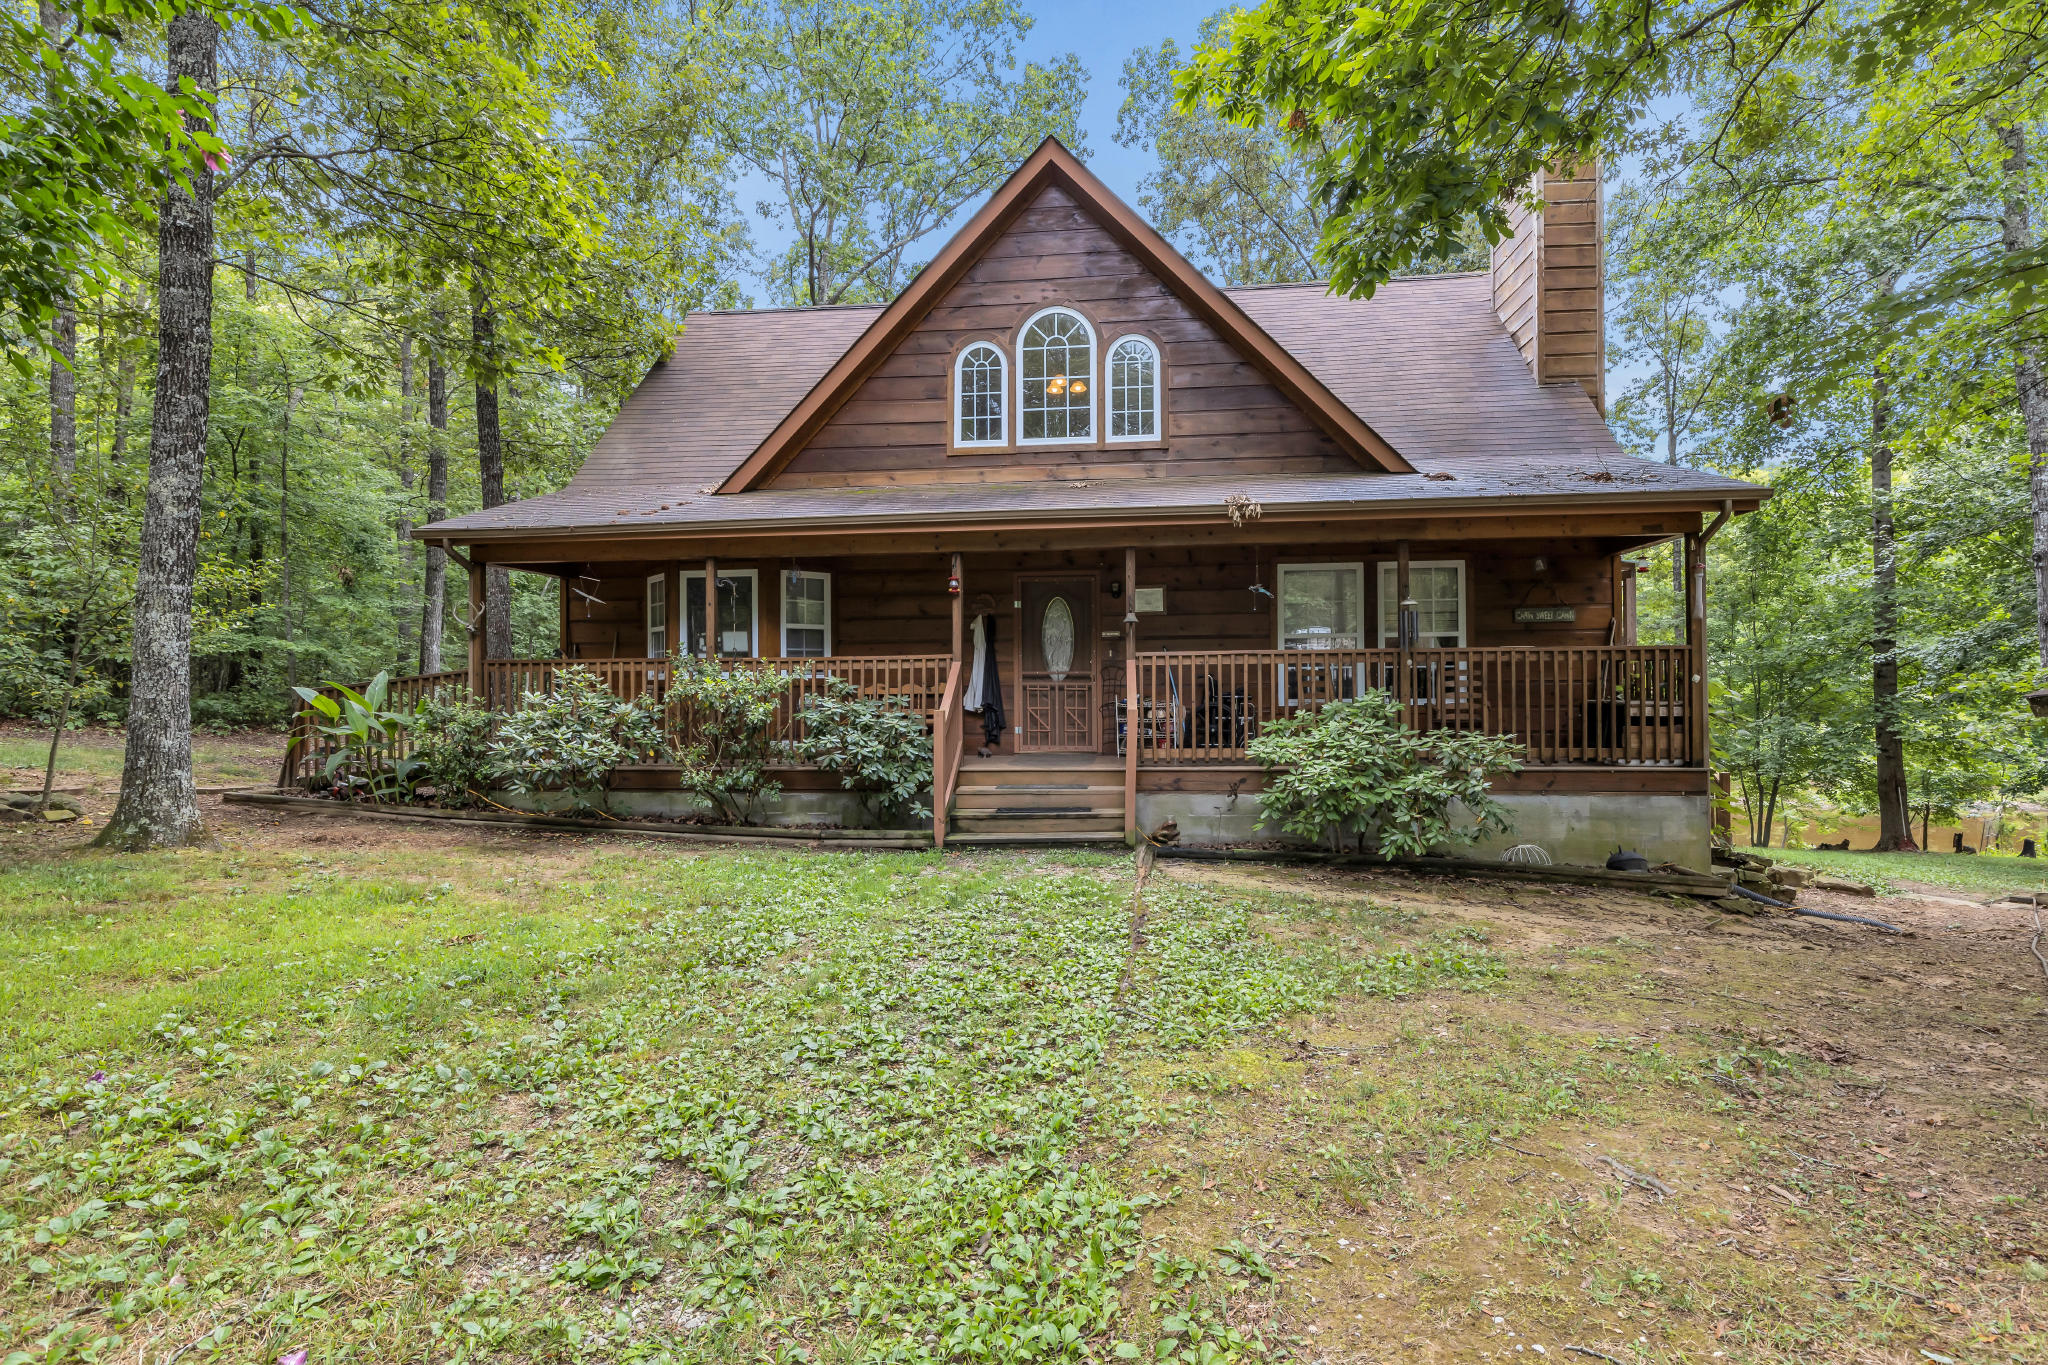 599 Woodland Ridge Rd, Dunlap, TN 37327